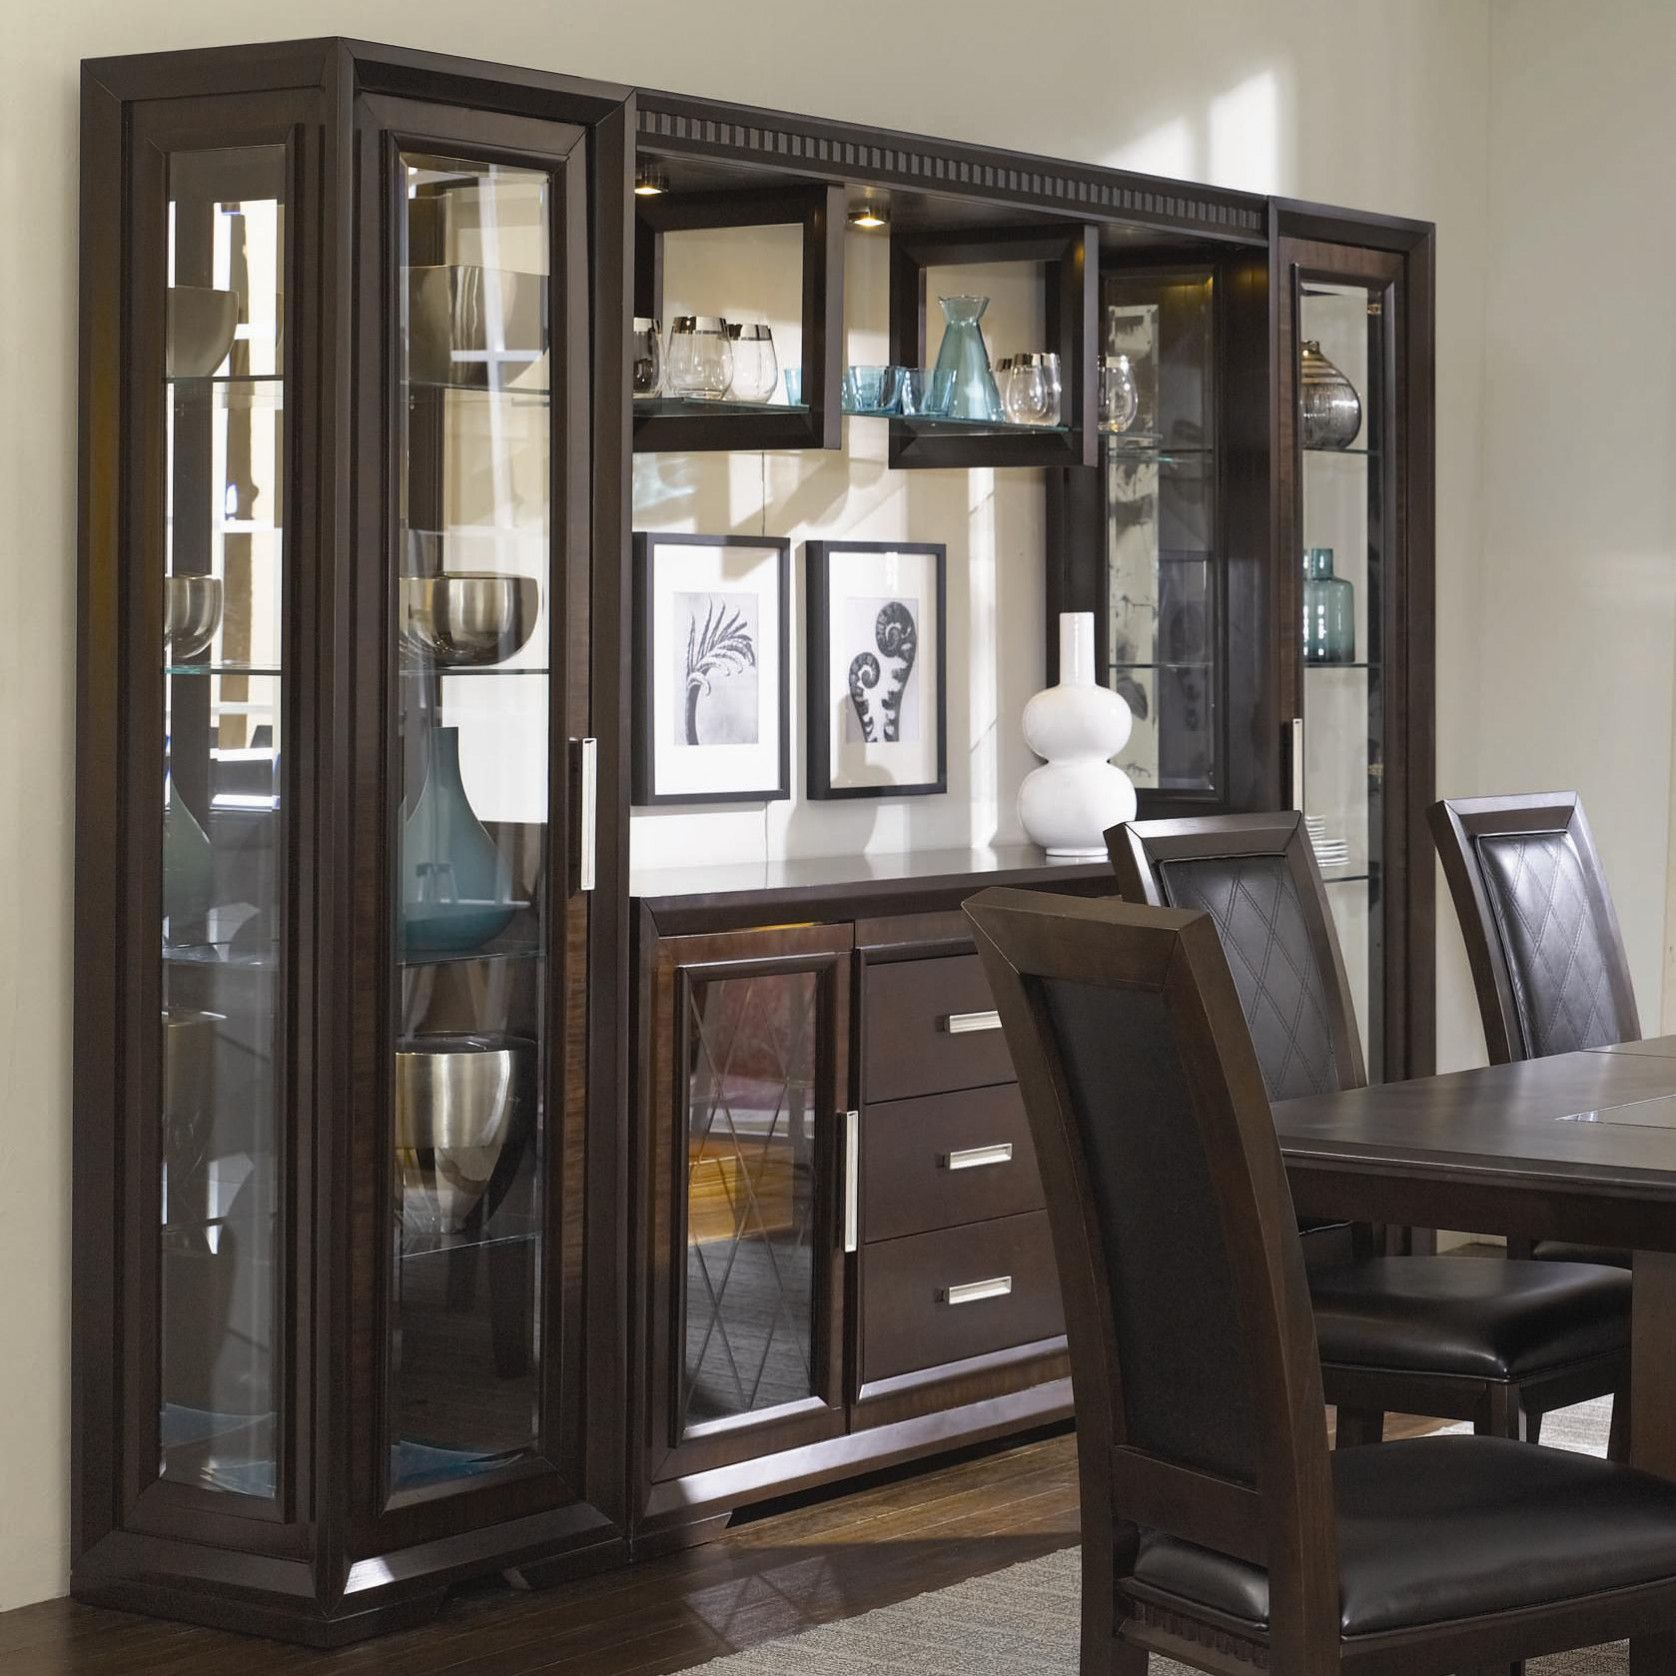 50 Modern China Cabinet Display Kitchen Design And Layout Ideas Check More At Http Www Planetgreenspot Com 2018 Najarian Furniture Furniture China Cabinet